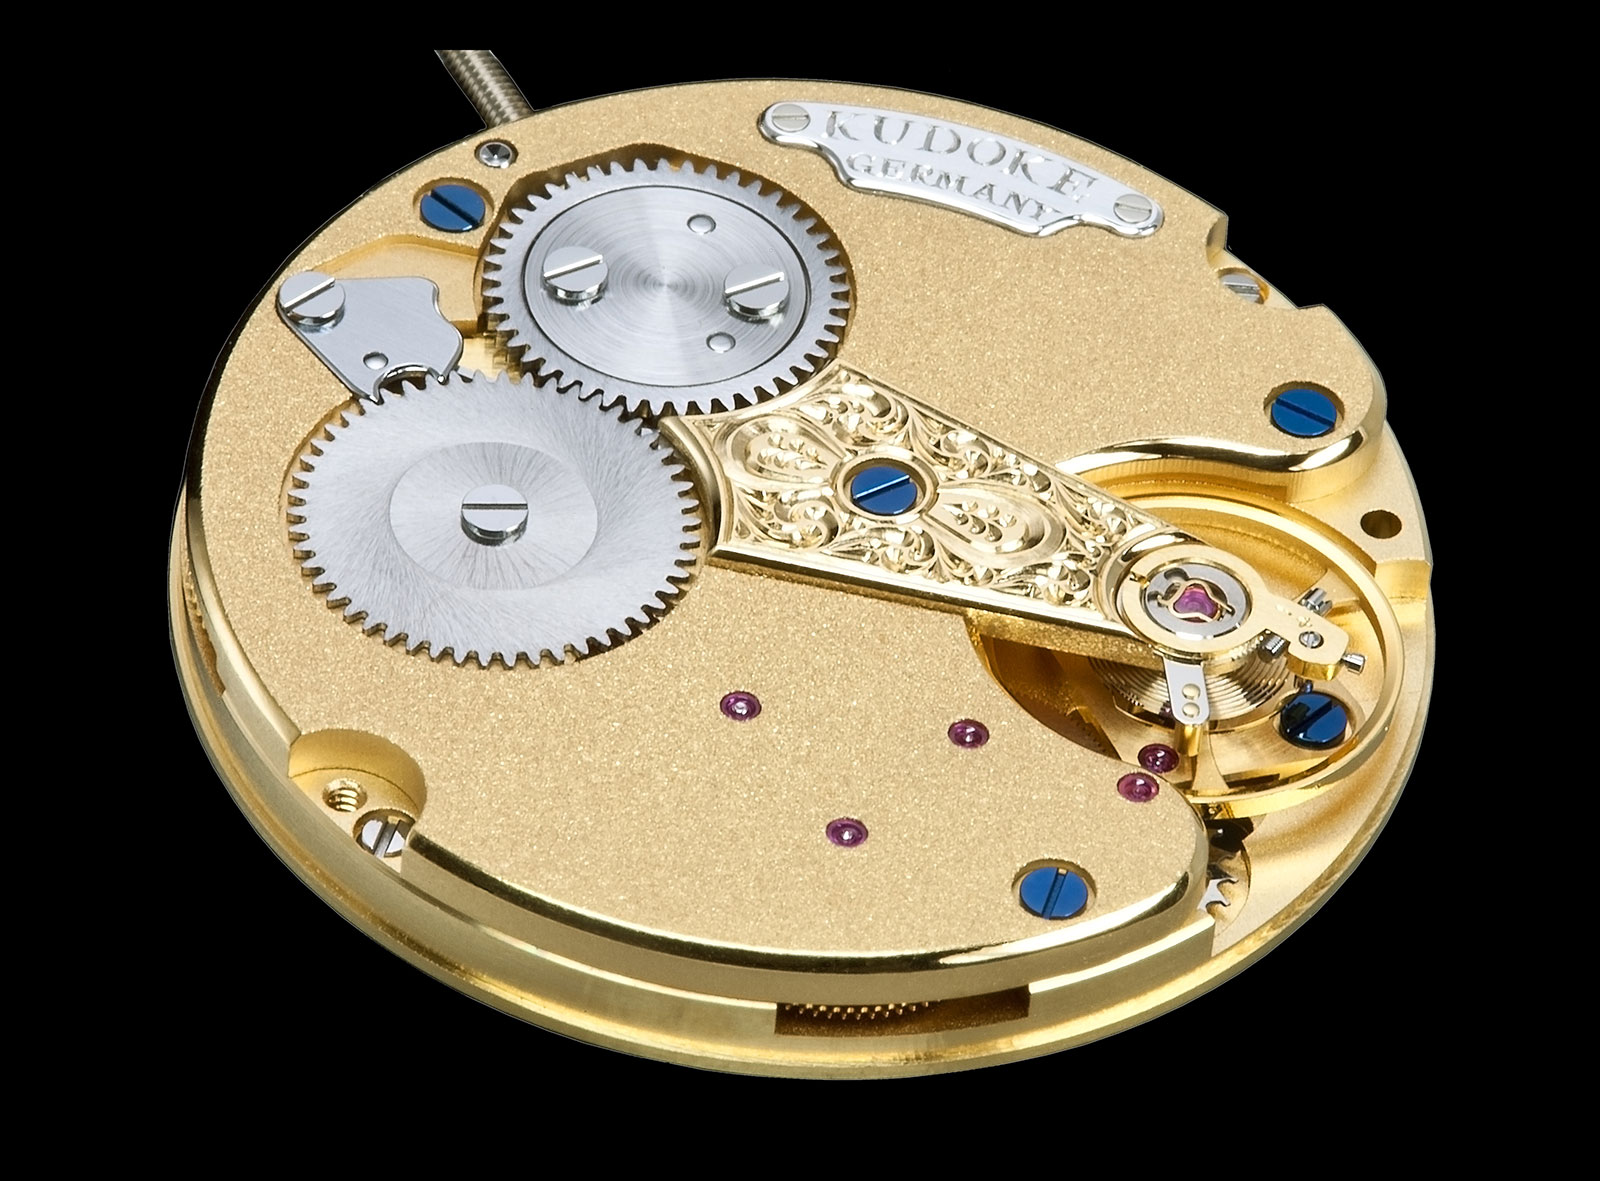 KUDOKE Kaliber 1 watch movement 2